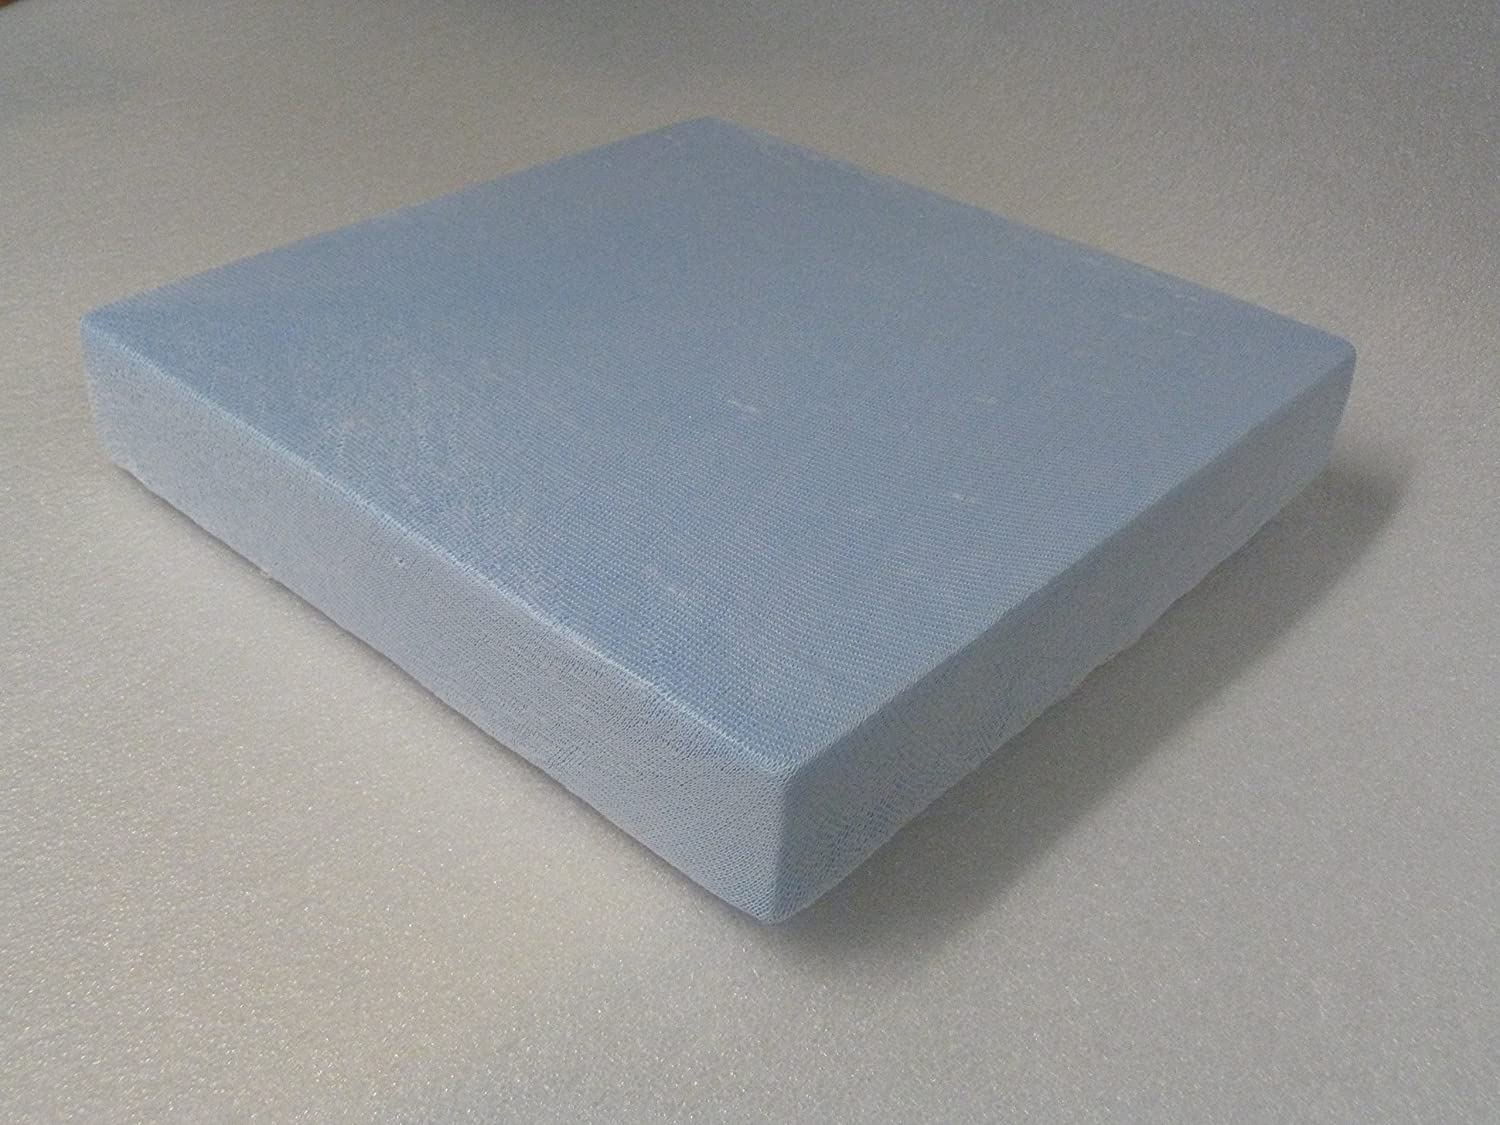 3/4 ROCK AND ROLL BED FOAM SET CUT TO SIZE: Amazon.co.uk: Kitchen & Home